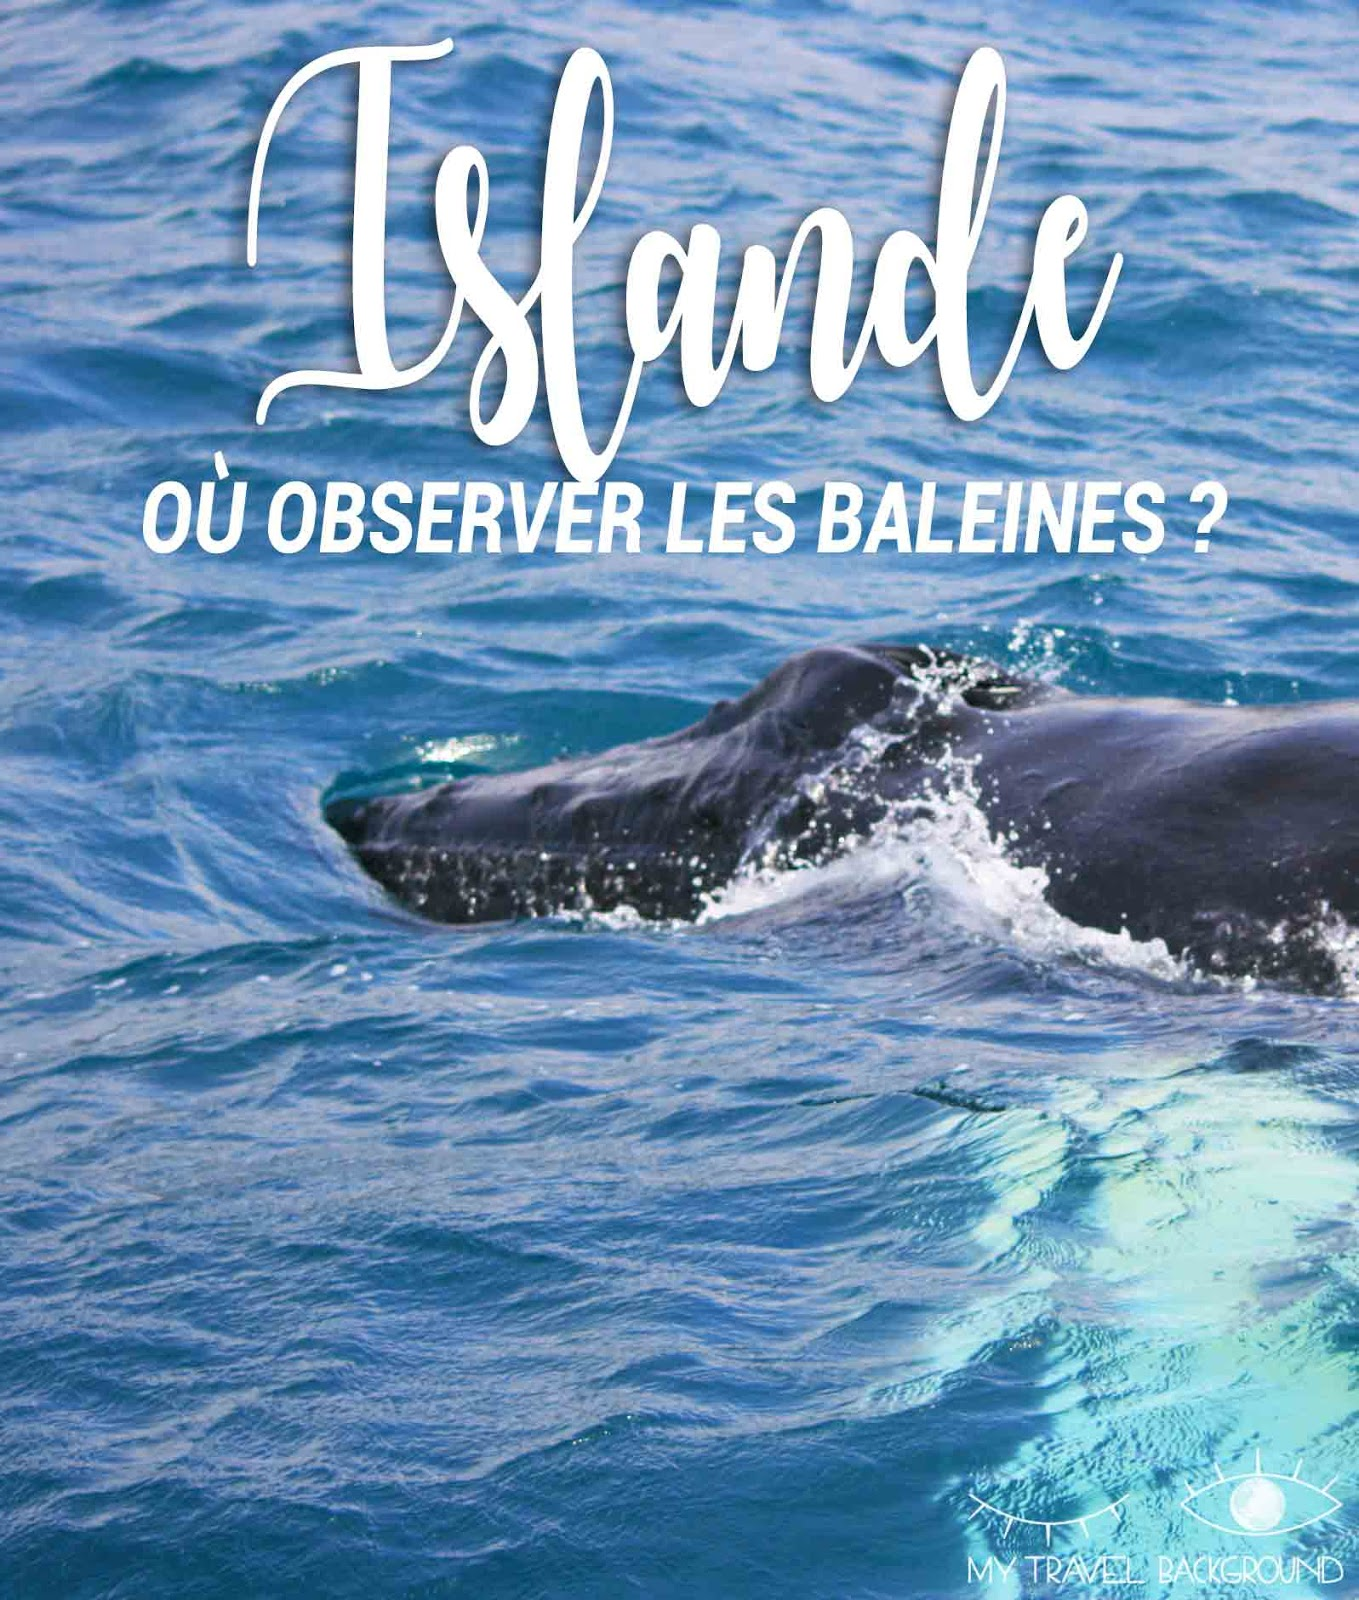 My Travel Background : Où observer les baleines en Islande?